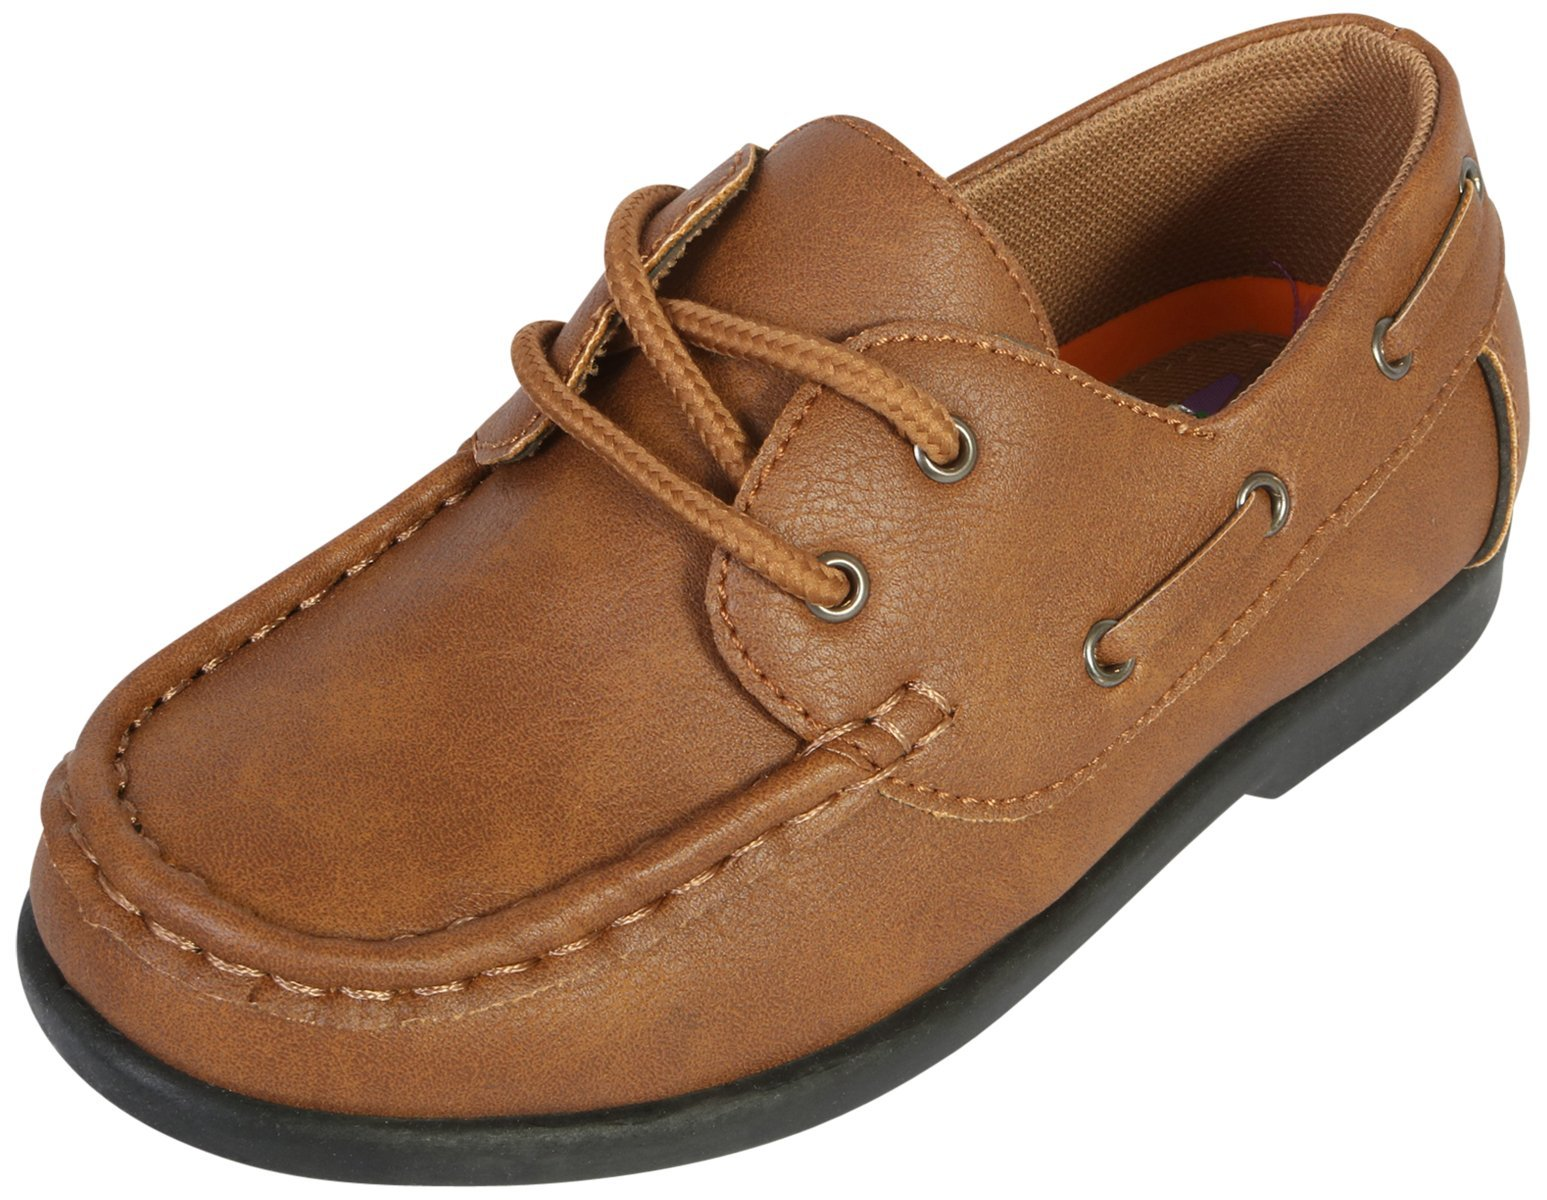 Jodano Collection Boys Slip on Boat Shoes with Memory Foam Insole, Tan, 10 M US Toddler' by Jodano Collection (Image #1)